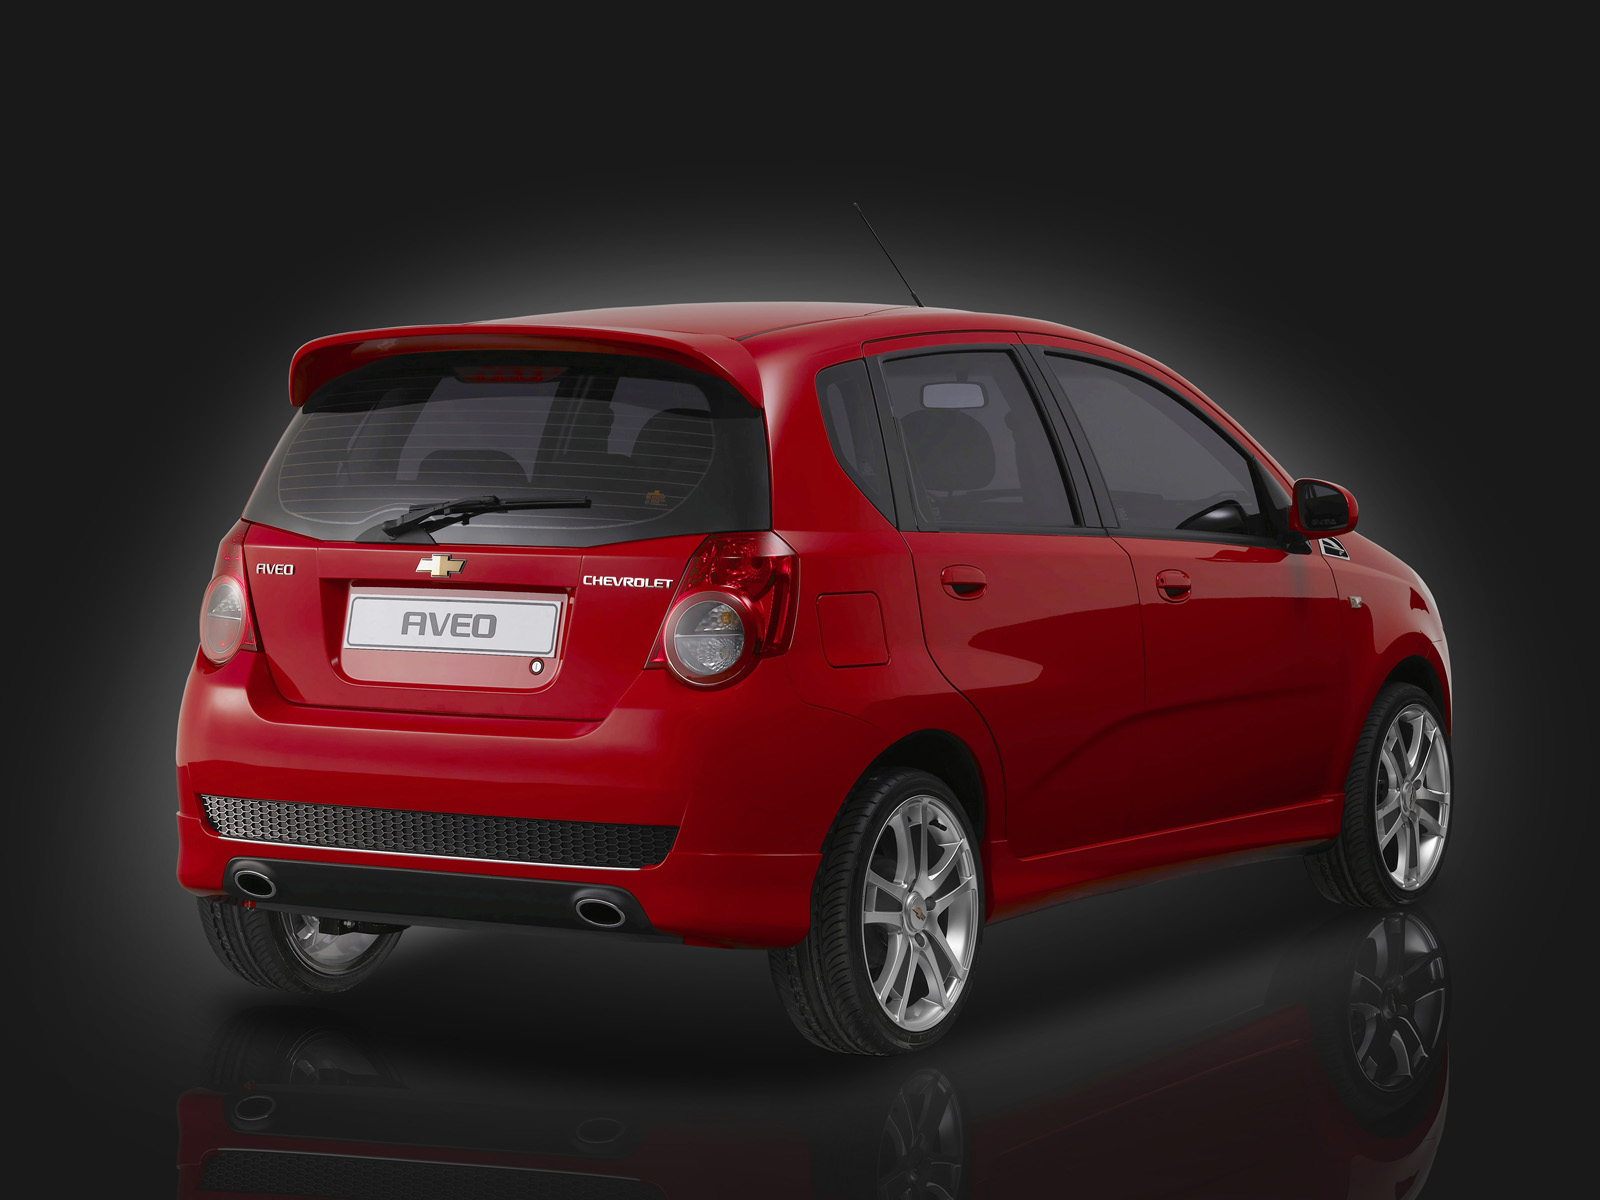 Chevrolet Announces Pricing For 2009 Aveo And Aveo5